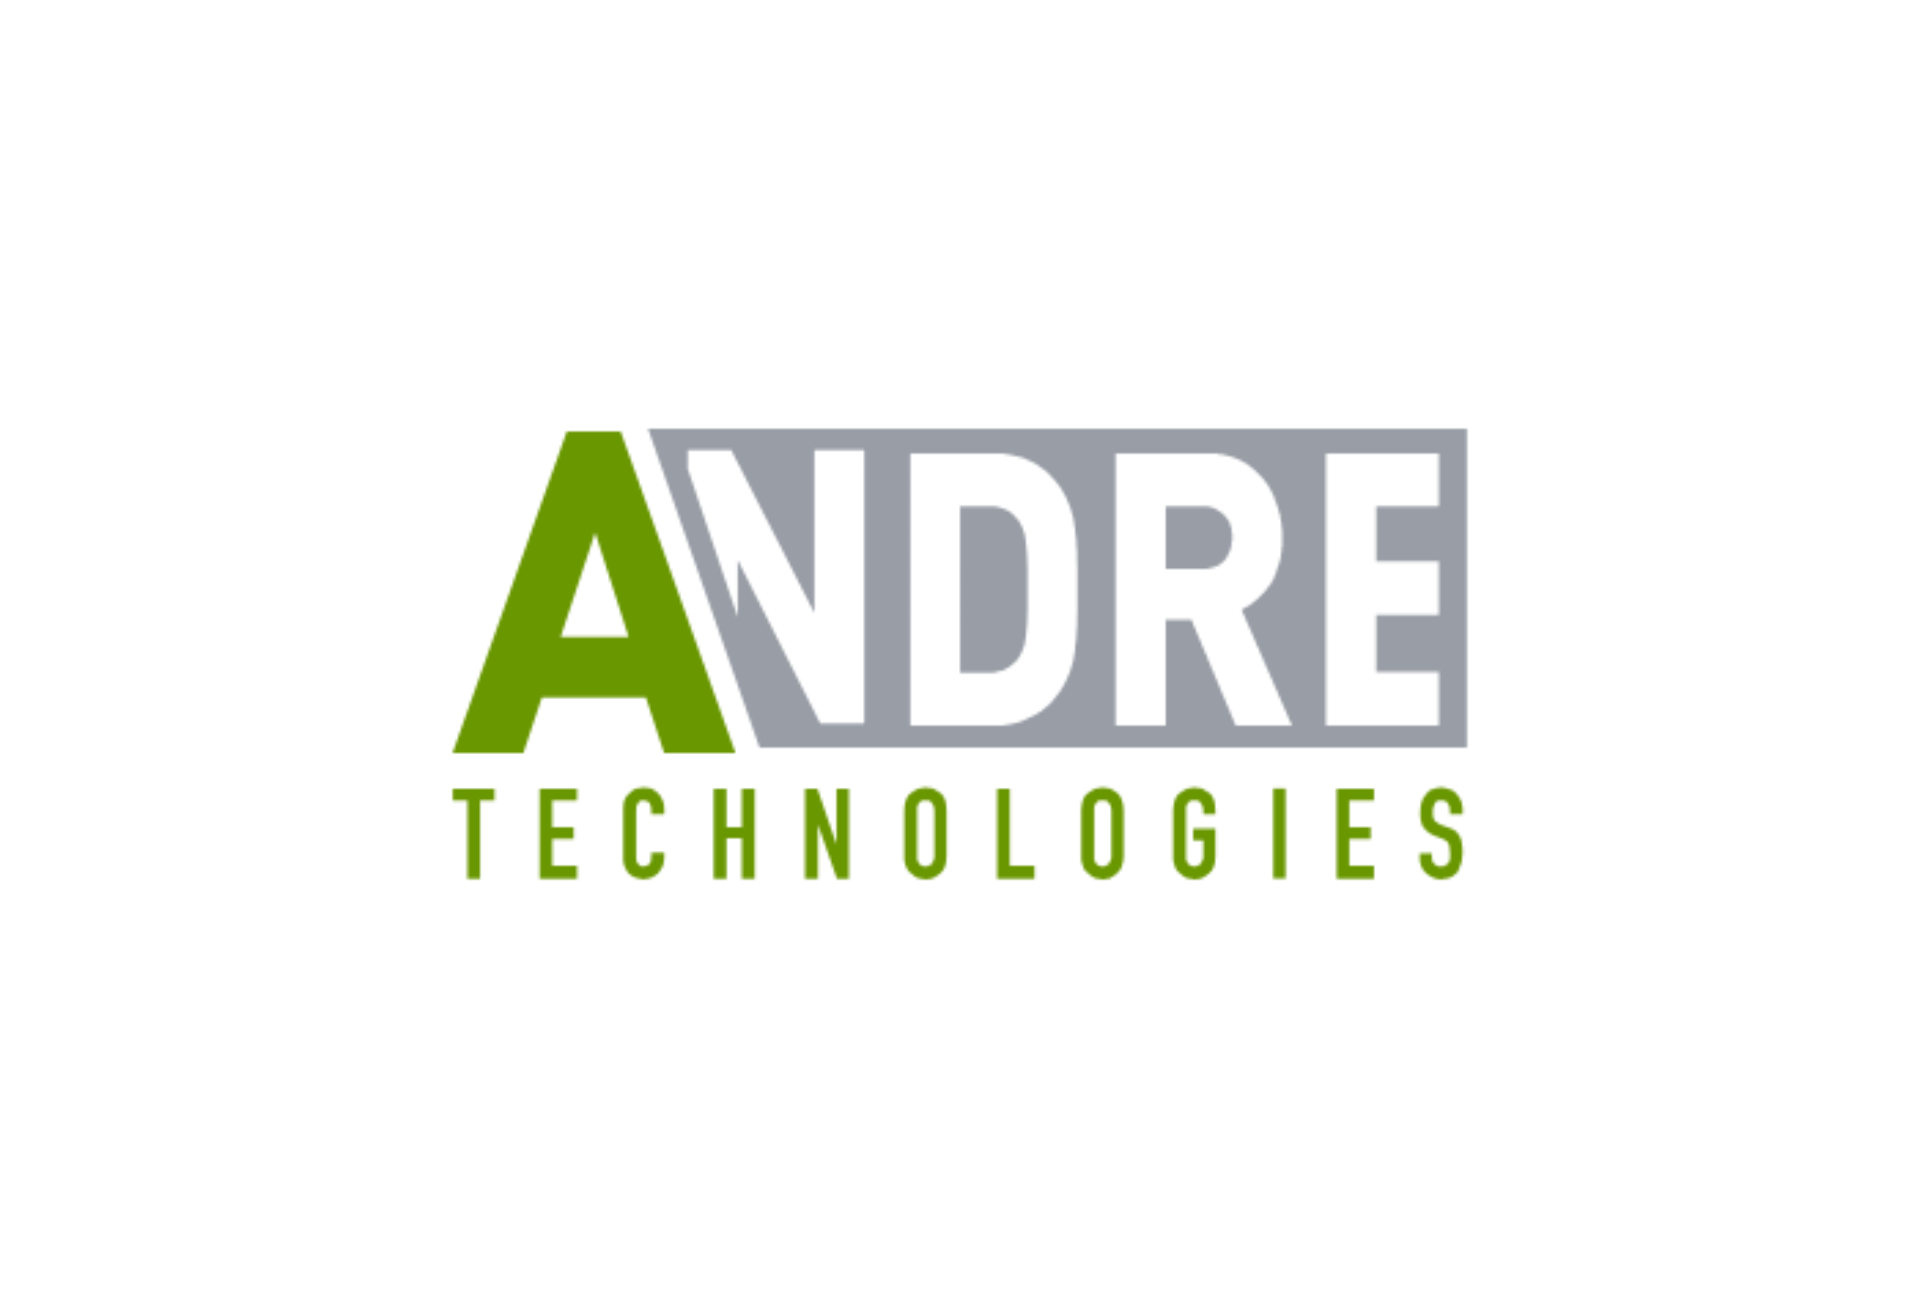 andre technologies